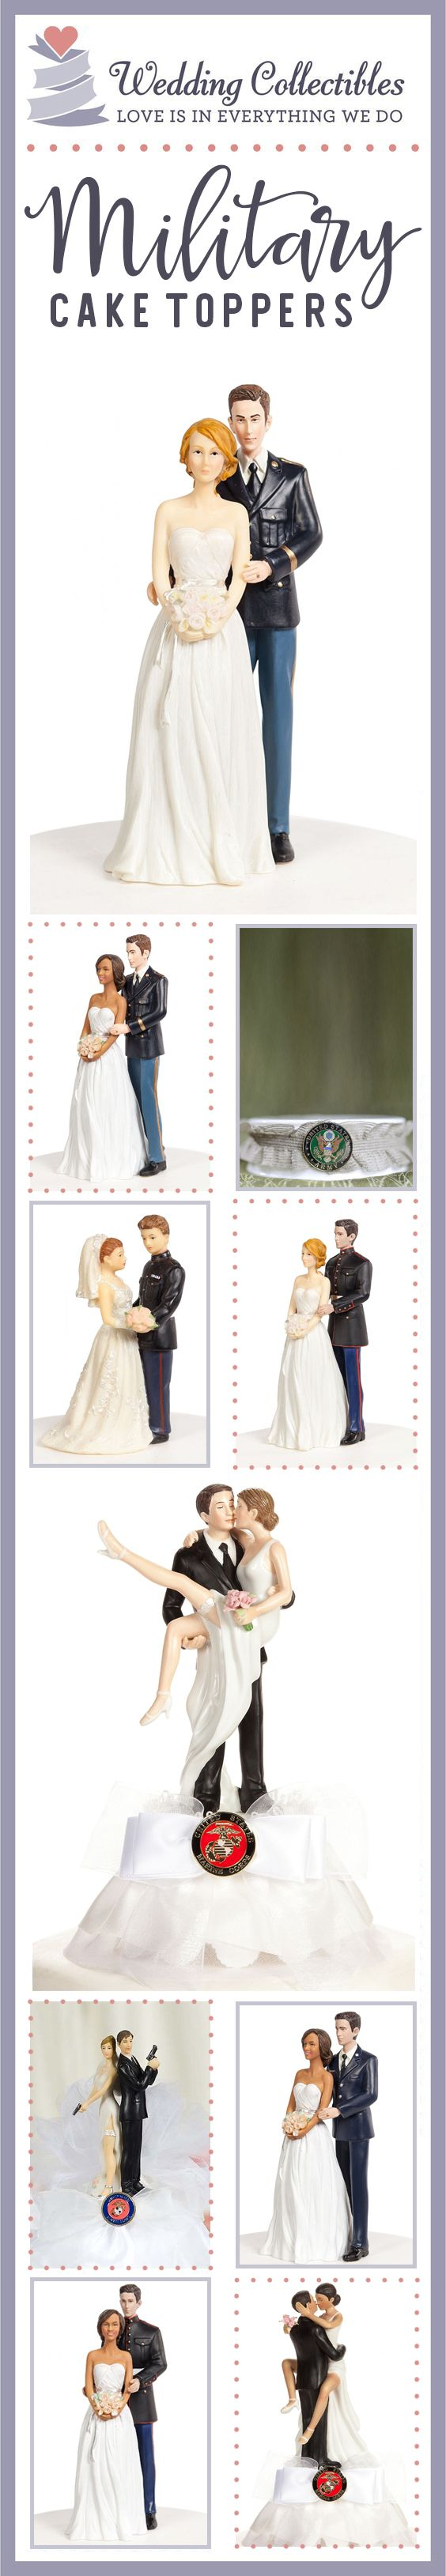 Find the perfect cake topper for your special day. Browse our unique and customizable Navy, Army, Marines, and Air Force wedding cake toppers! View more here: http://www.weddingcollectibles.com/Military-Wedding/